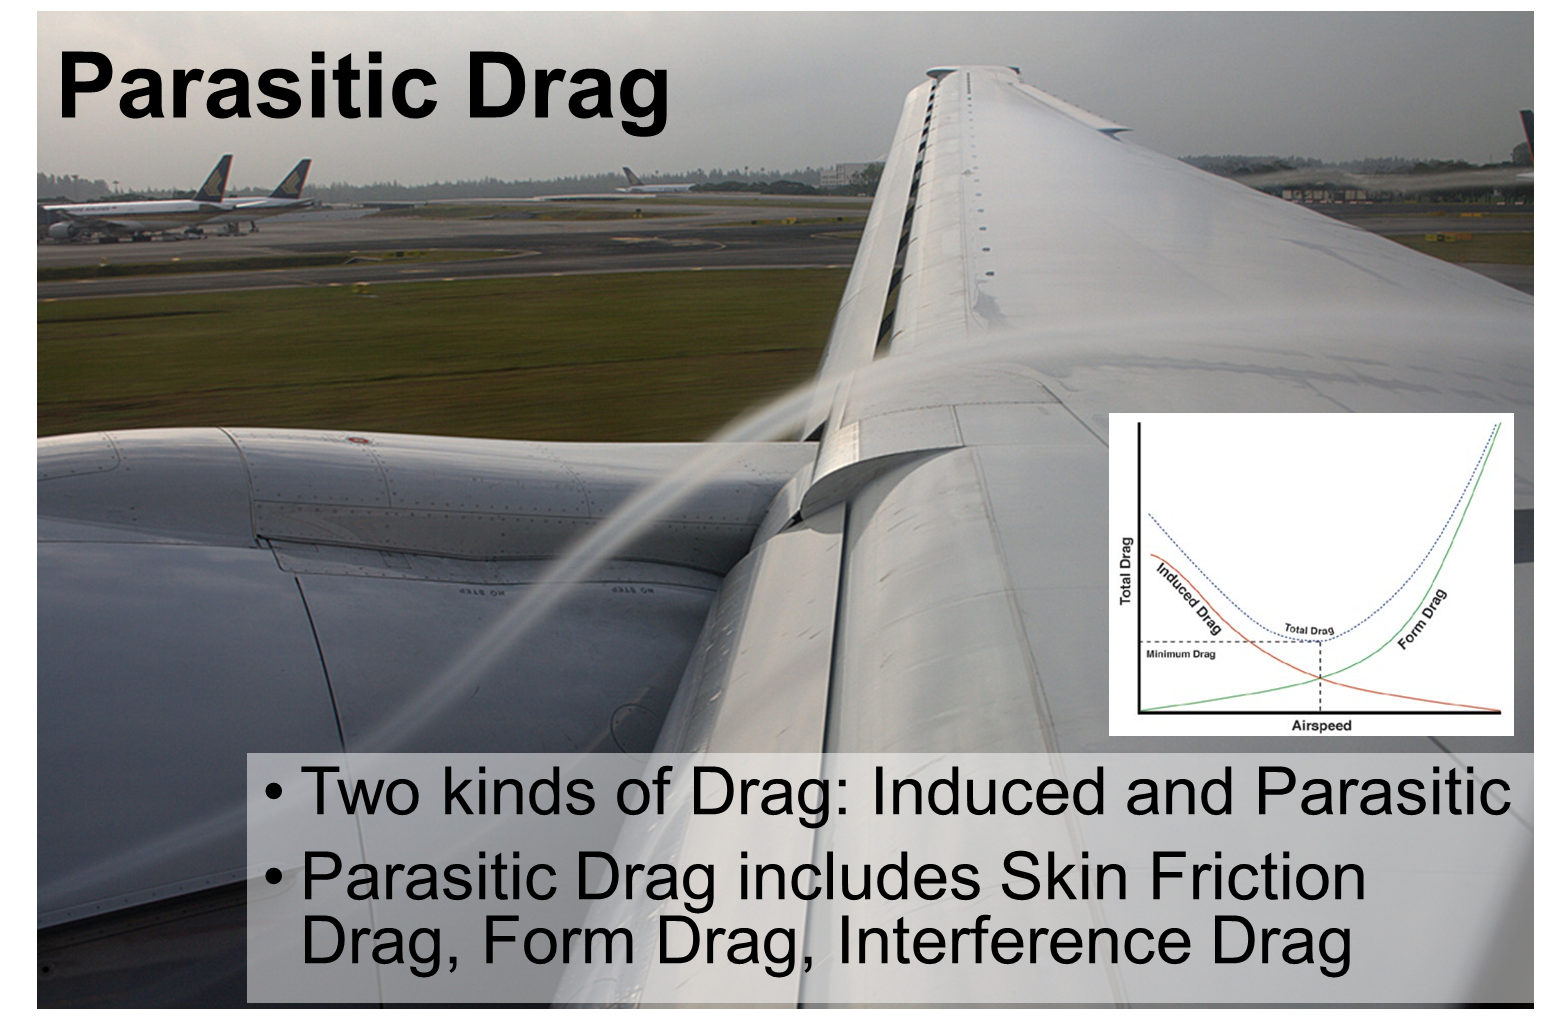 Improving Fuel Efficiency in Aircraft Using Dimensional Management on Gap and Step Conditions - Presented at Aerodef 2016